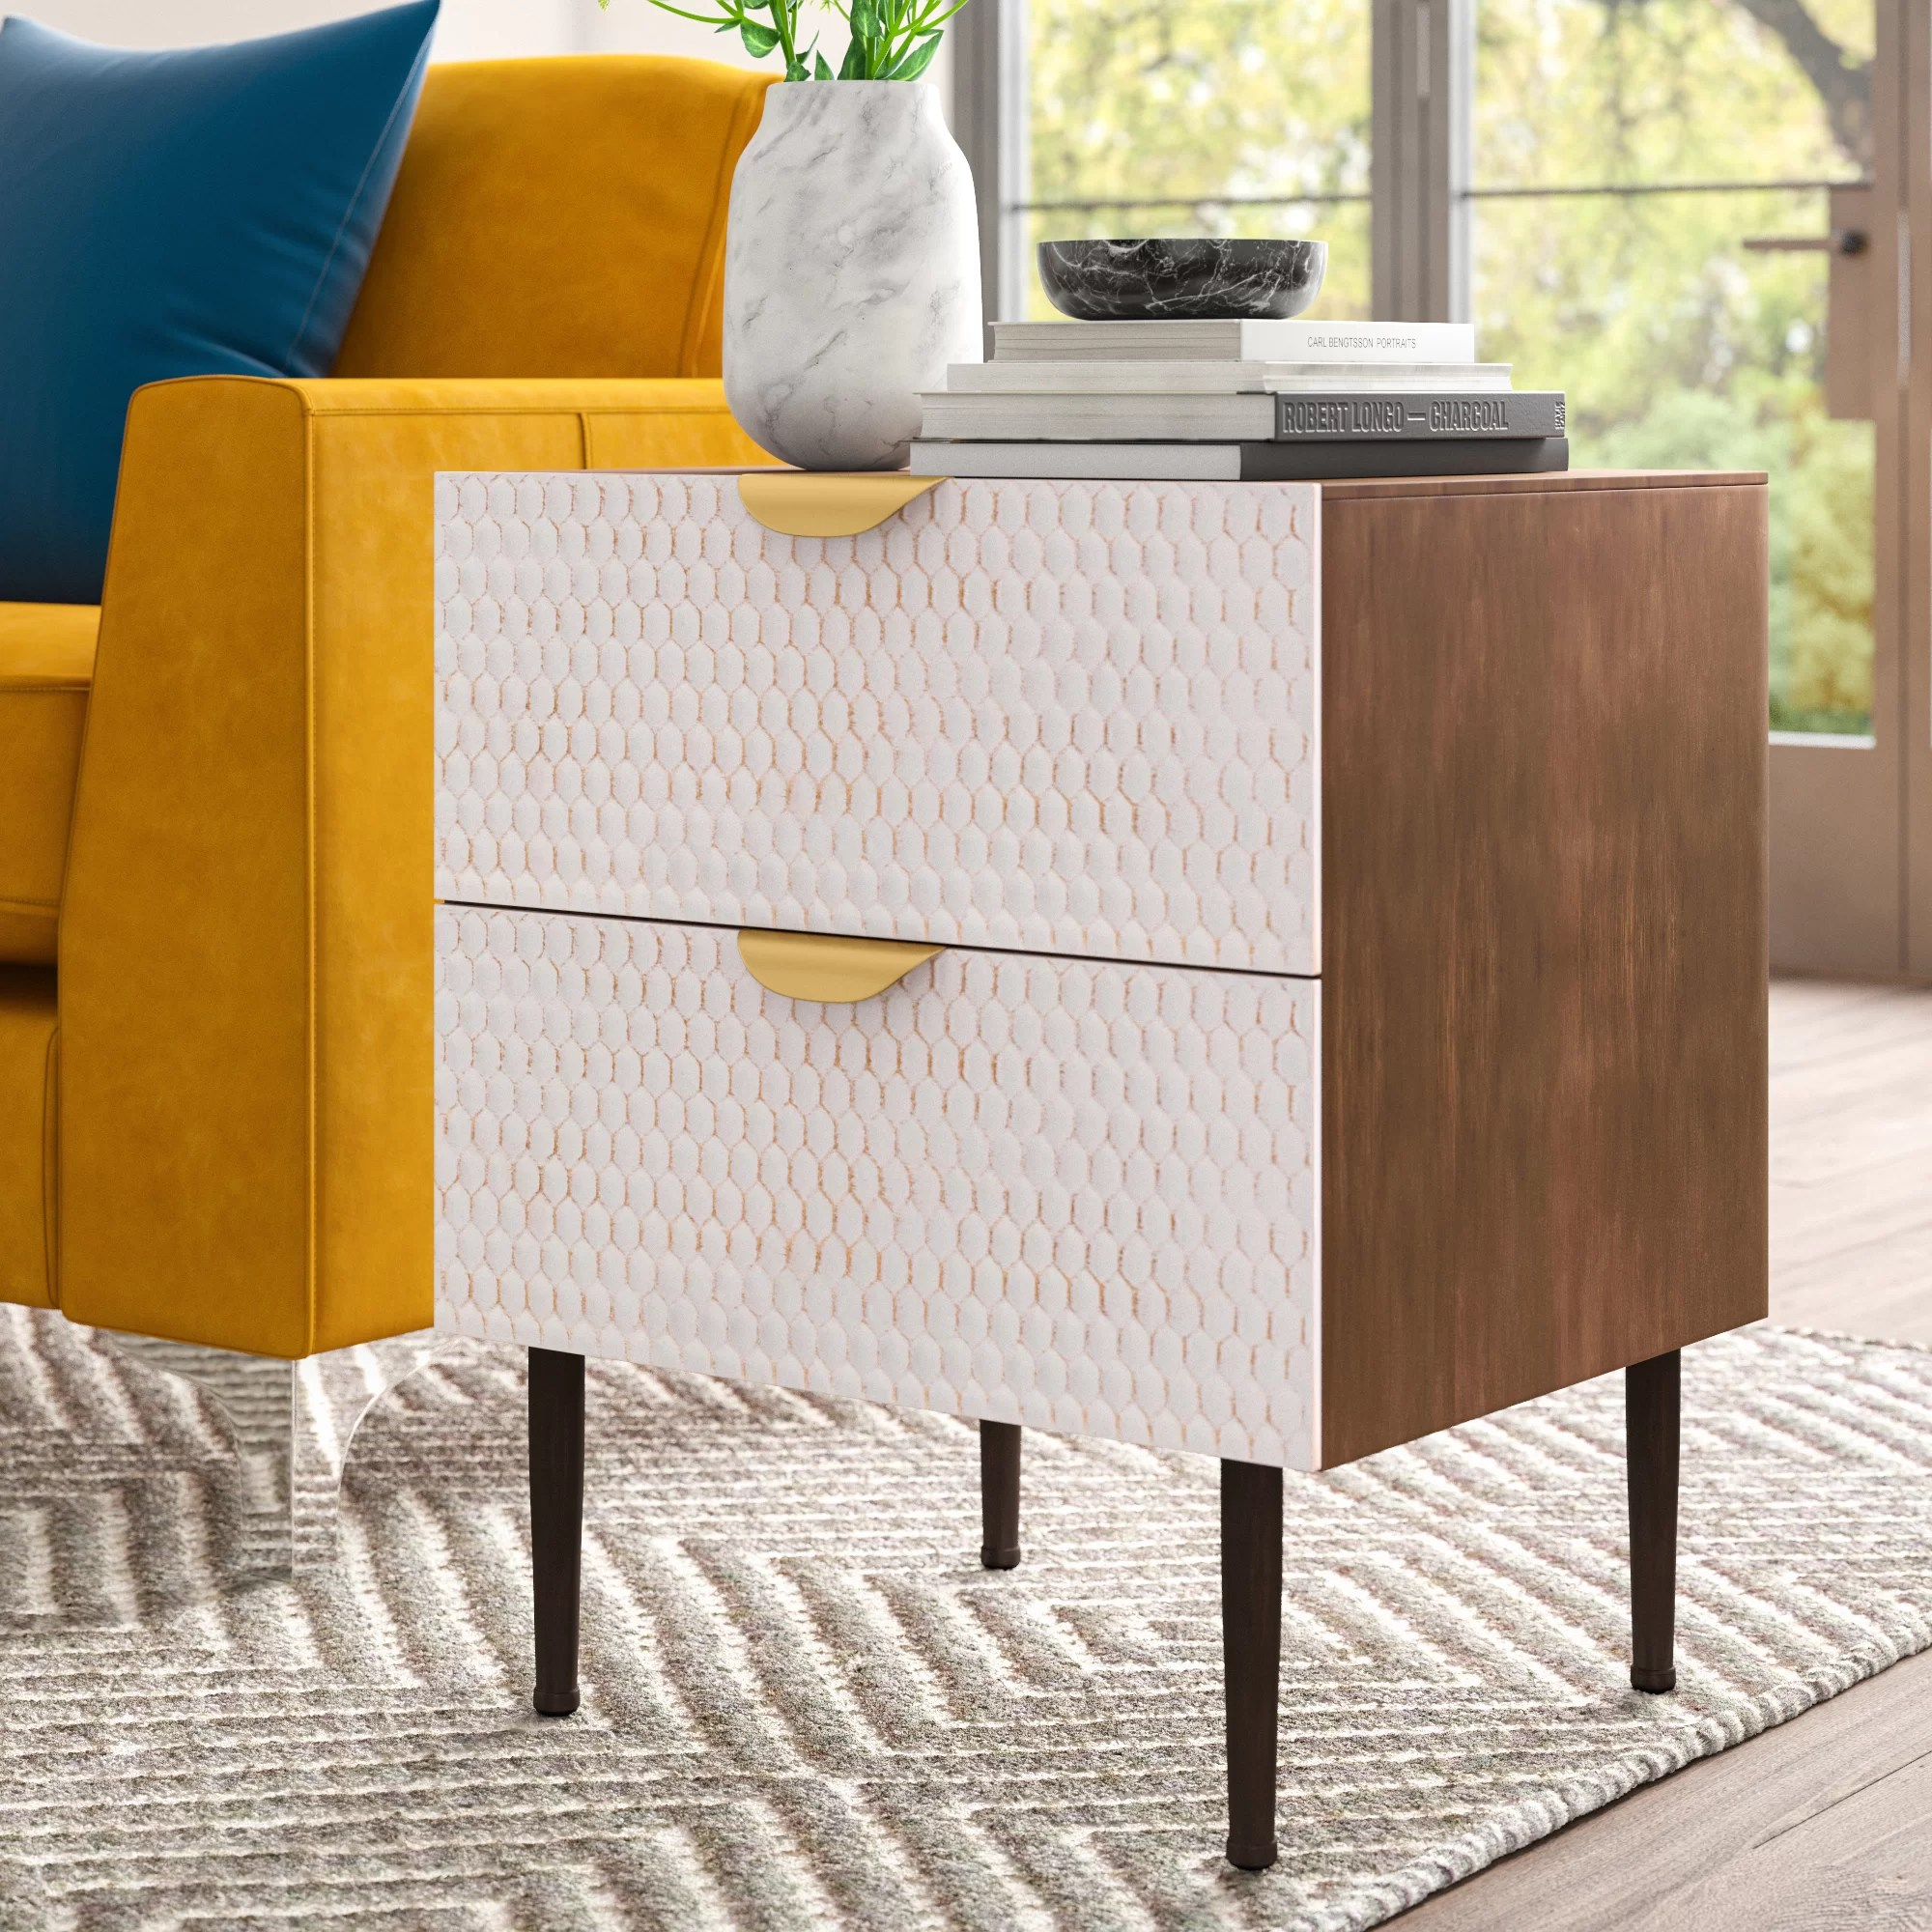 End Table For Living Room Moritz Honeycomb End Table With Storage